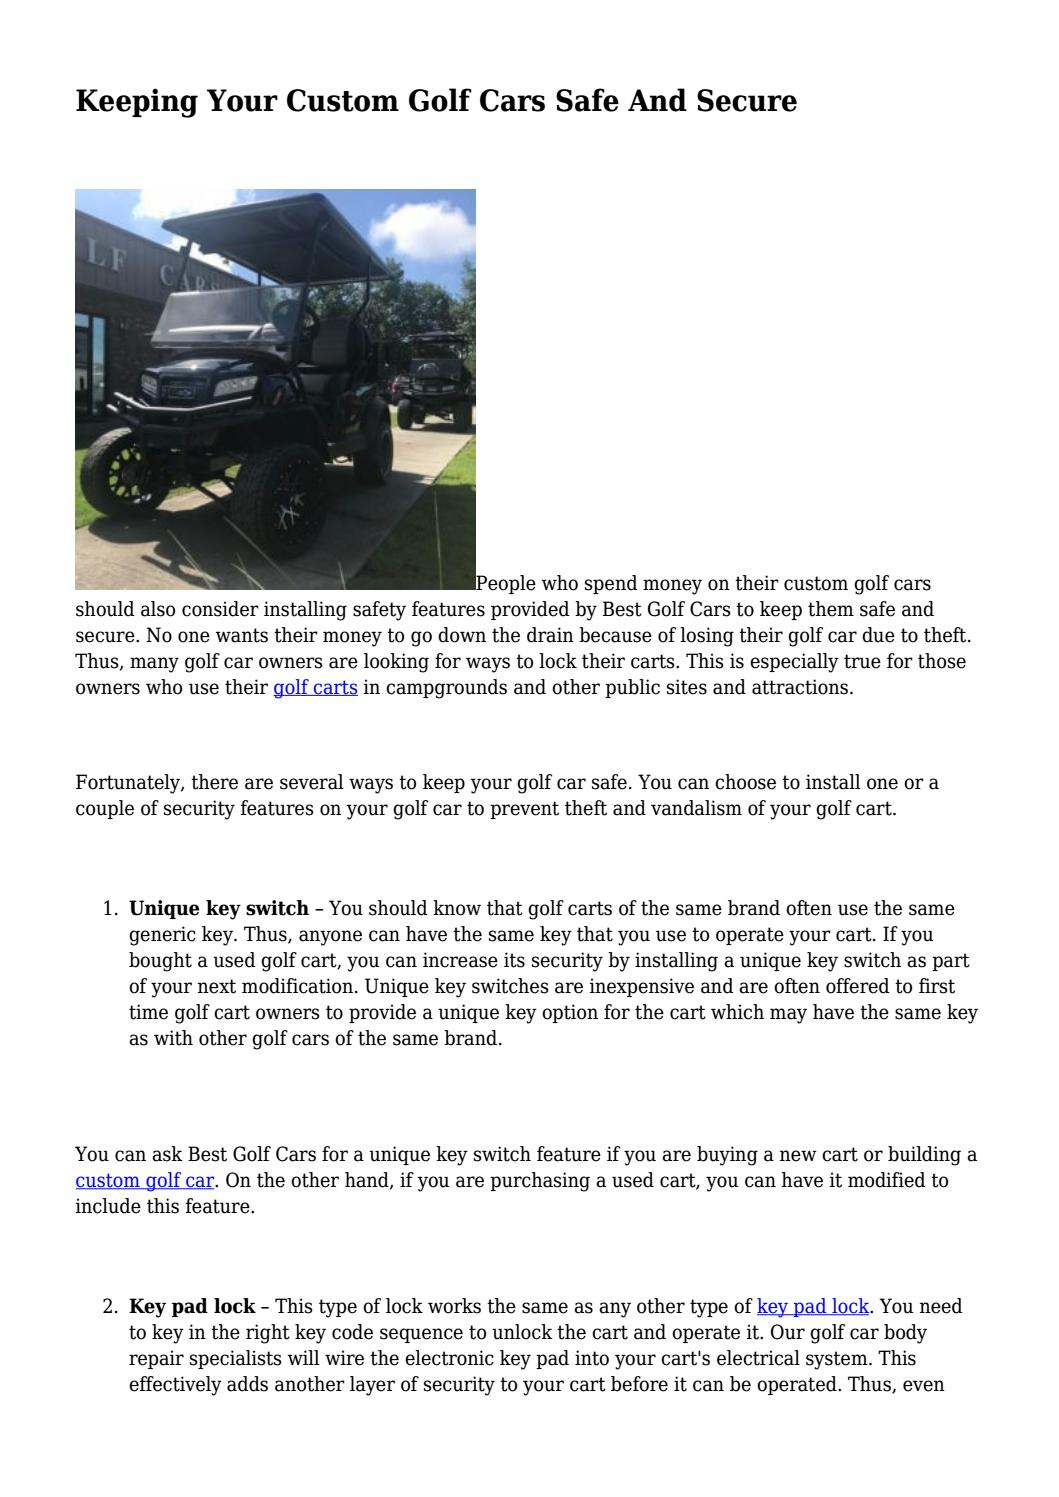 Keeping Your Custom Golf Cars Safe And Secure by Best Golf Cars - issuu